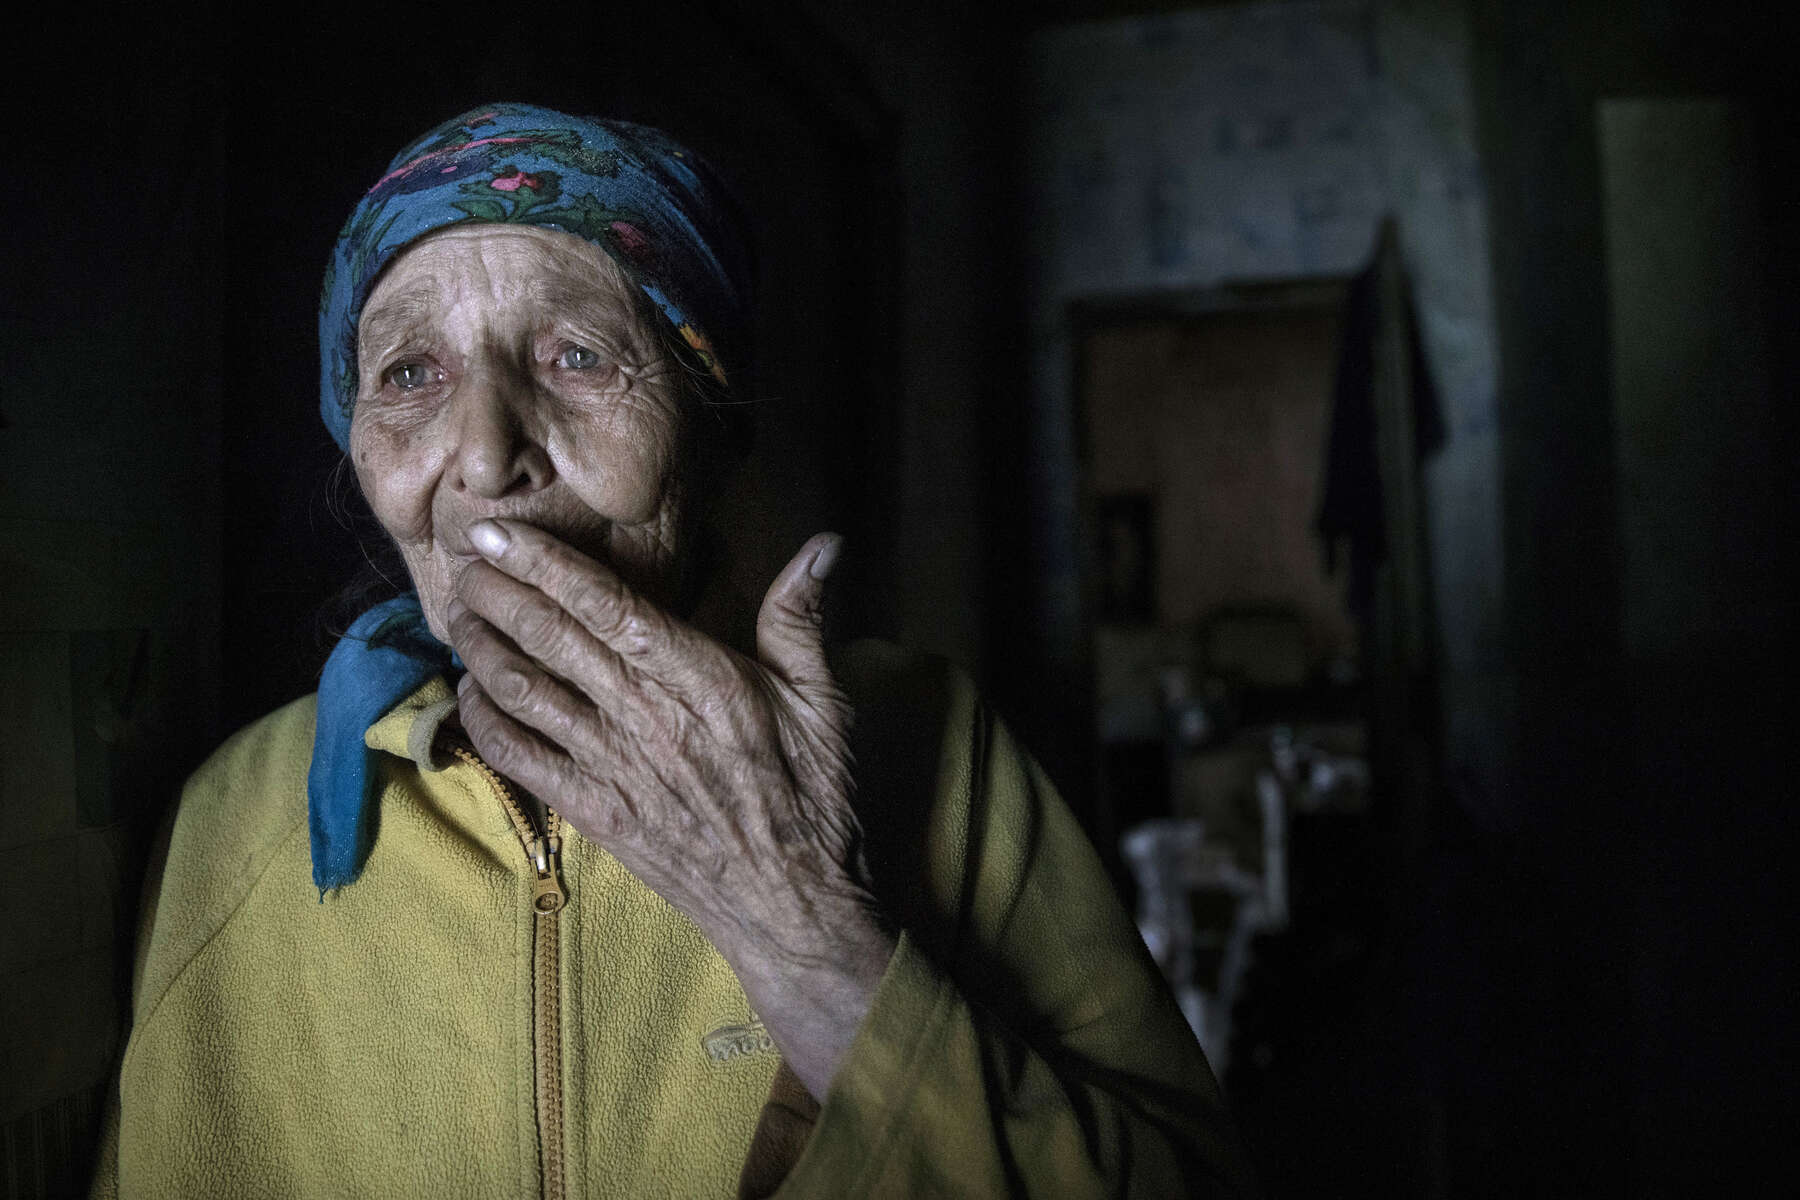 Opytne, Eastern Ukraine:  Mariya Gorpynych, age 76, lives alone. She speaks with tears in her eyes while talking about the death of her son and her husband. Her son Victor,48, was fatally injured by shelling near the home in 2016, he died in her arms. Then her husband, died in the same year from a heart attack caused by extreme stress. Mariya refuses to leave her village because her family are buried near by.{quote}I have nowhere to flee, my whole family is buried here.{quote}  {quote}I got used to the continued shelling.{quote} Opytne is a war torn village on the contact line where only 43 people are left due to the dangers.